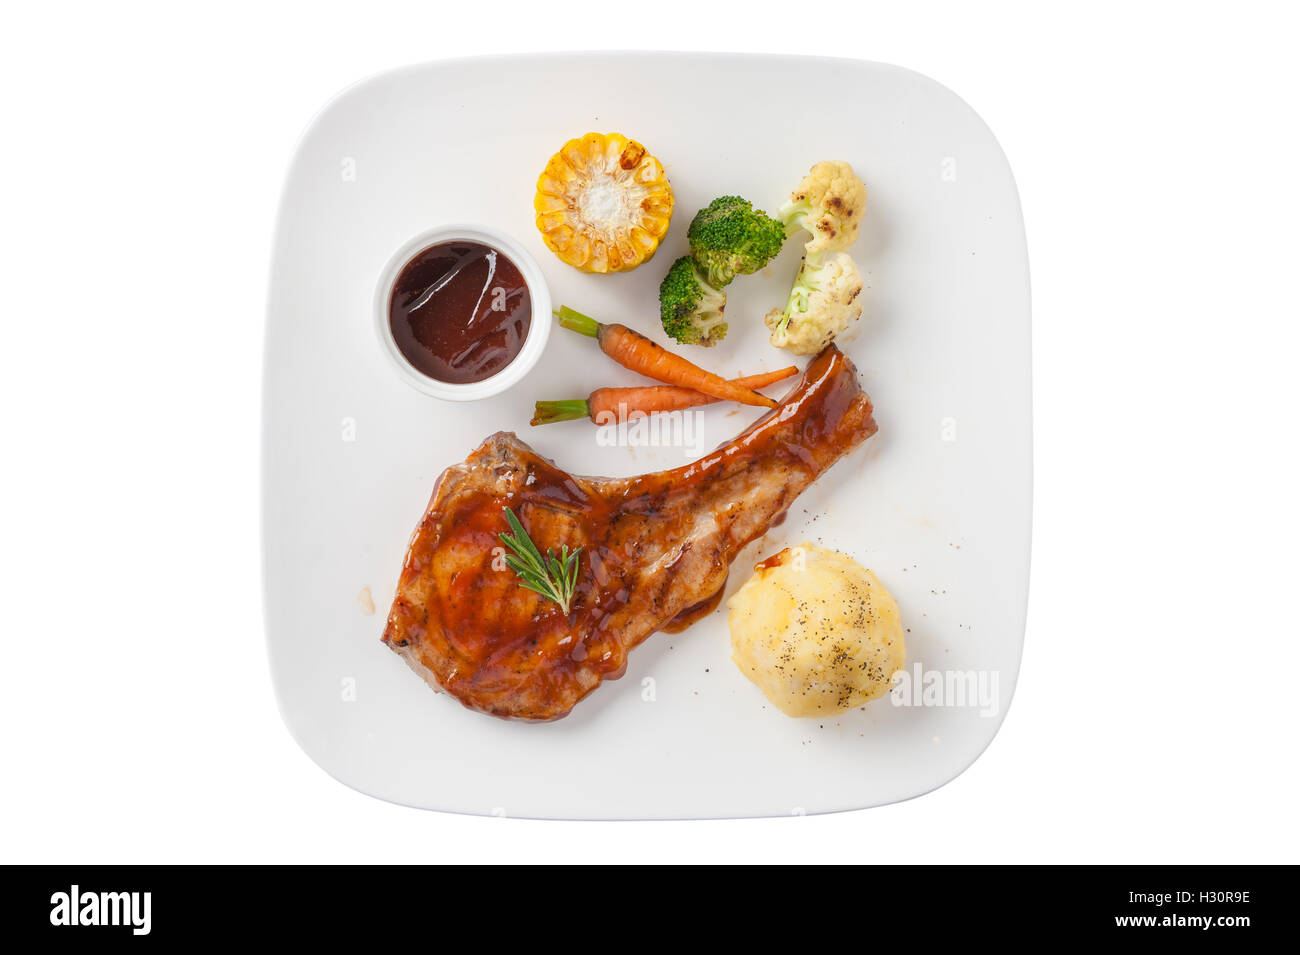 Top view of modern style pork chop with barbecue sauce, mashed potatoes, grilled vegetables in ceramic dish isolated - Stock Image